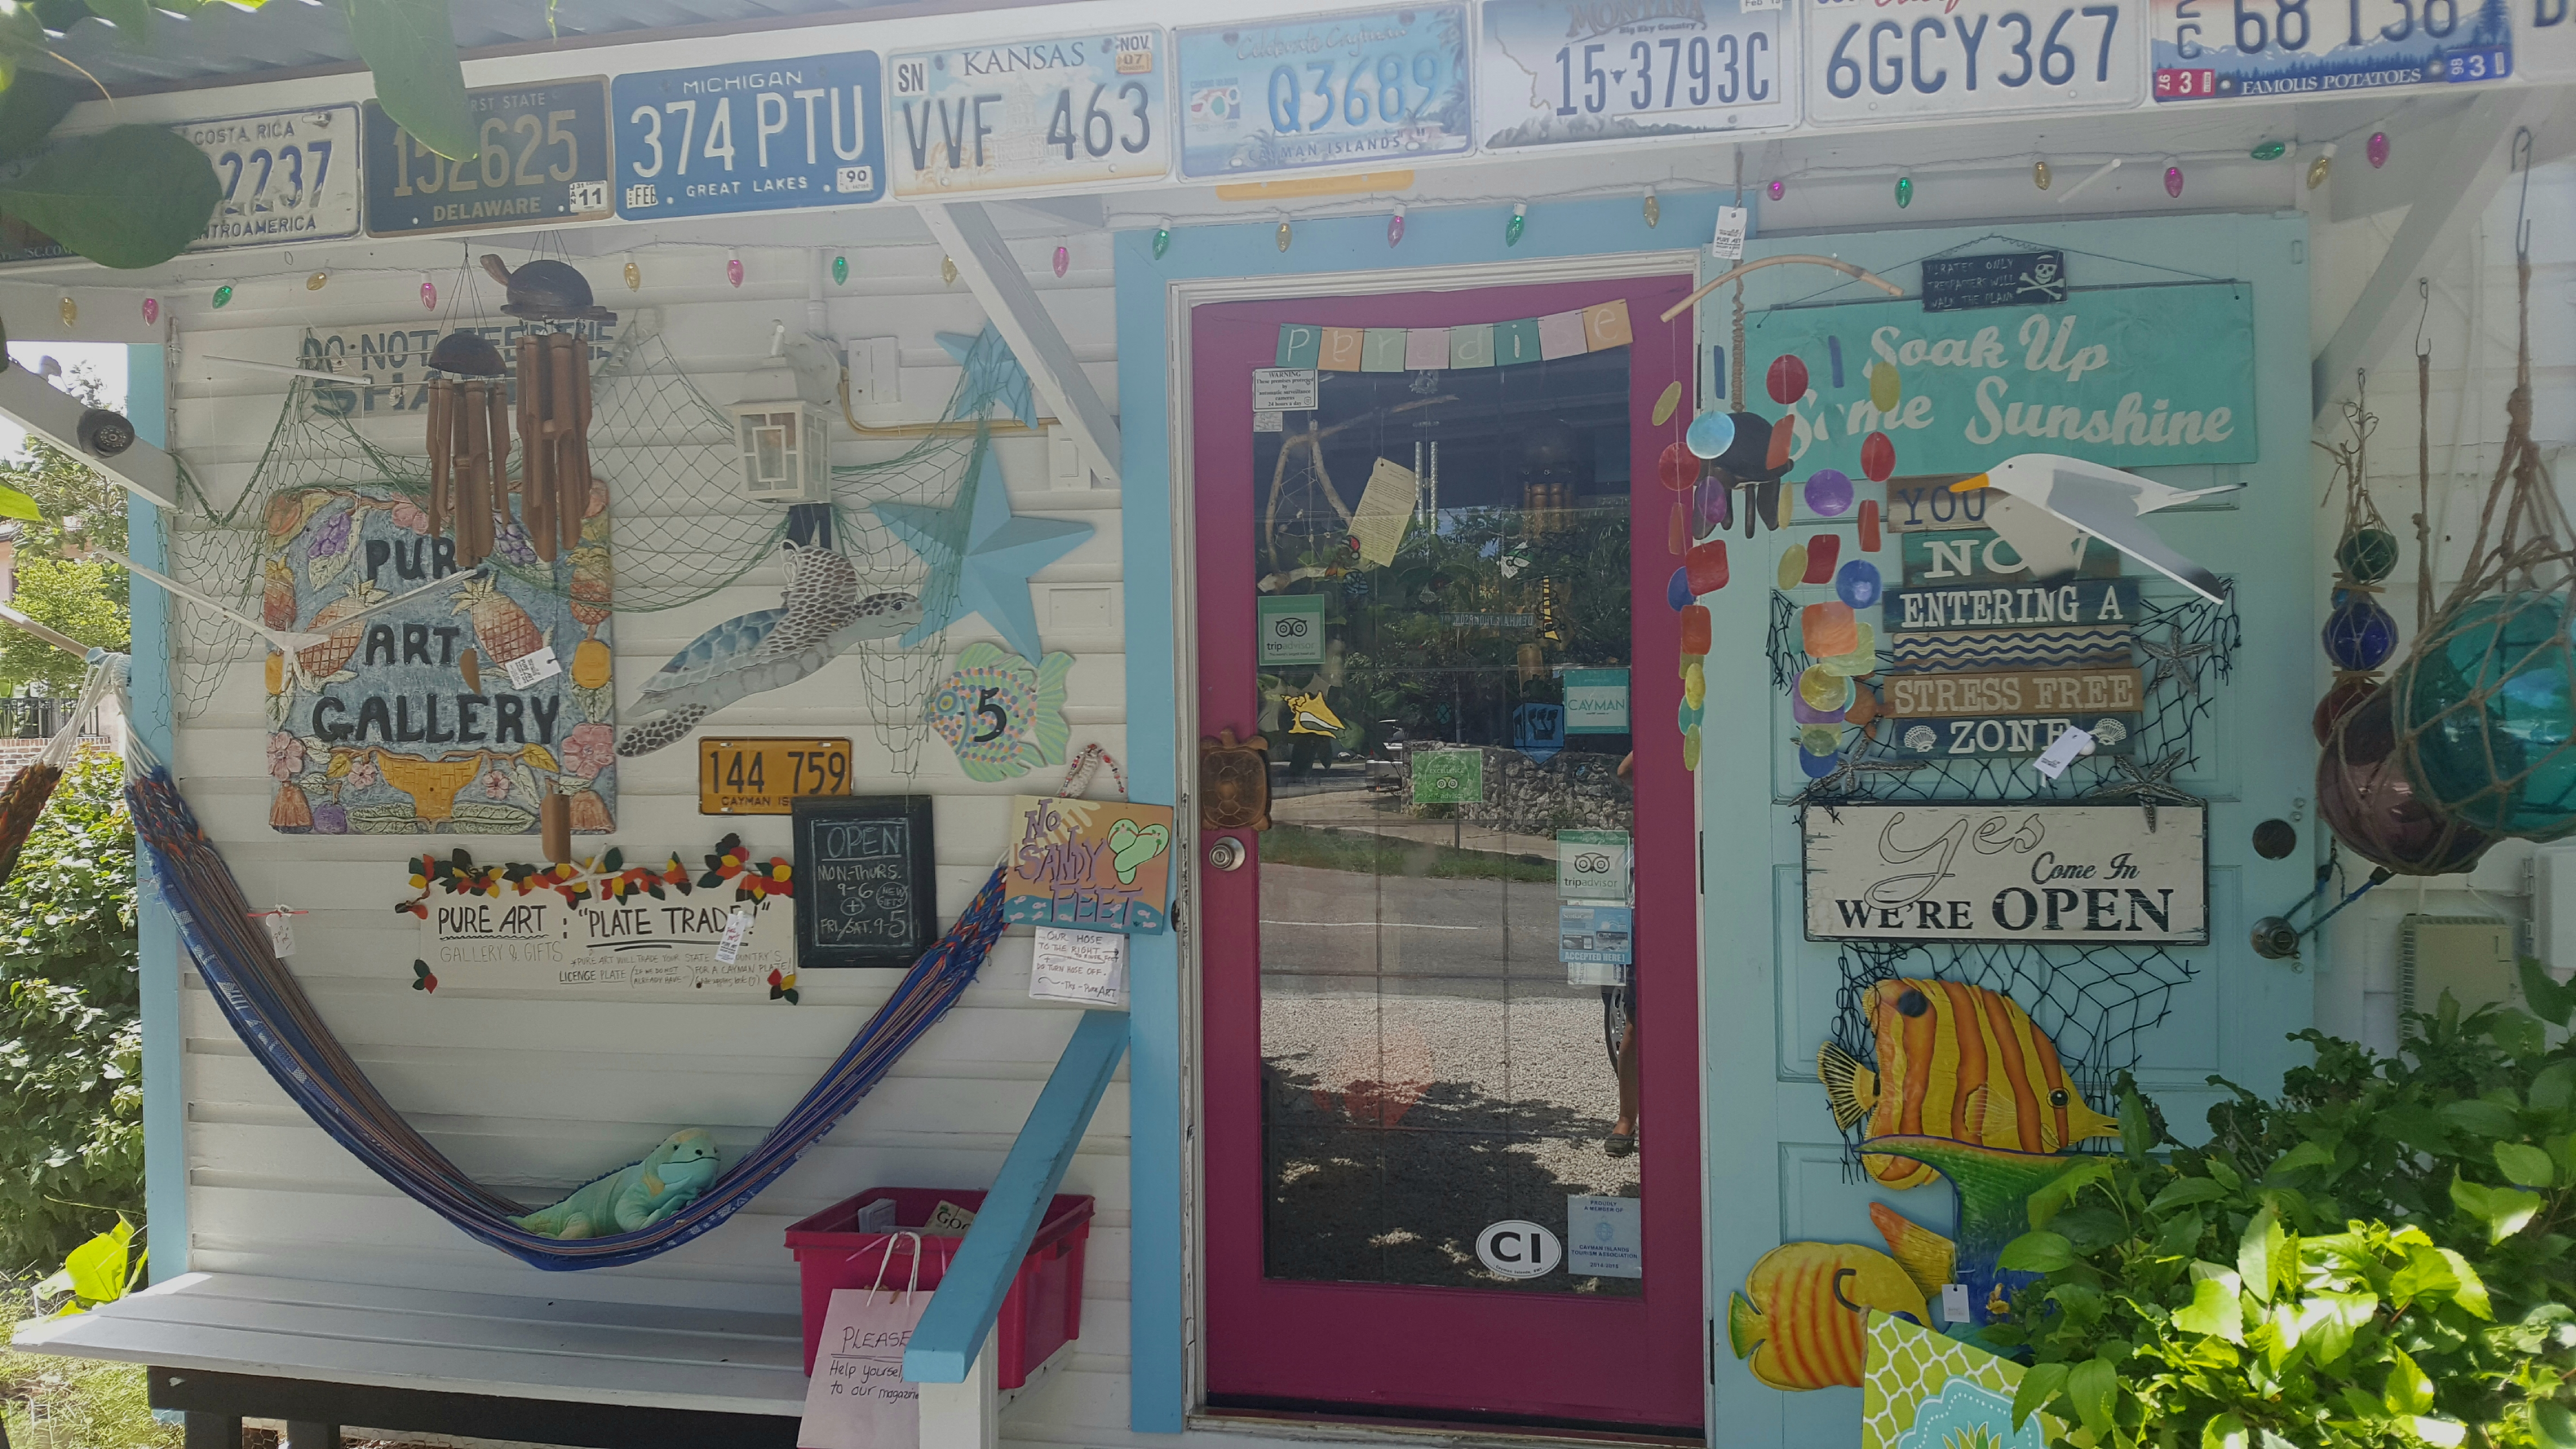 Pure Art gallery in South Sound, a rustic Caribbean wooden bungalow painted in white, blue and pink and decorated with chimes, paintings, American license places and shells.